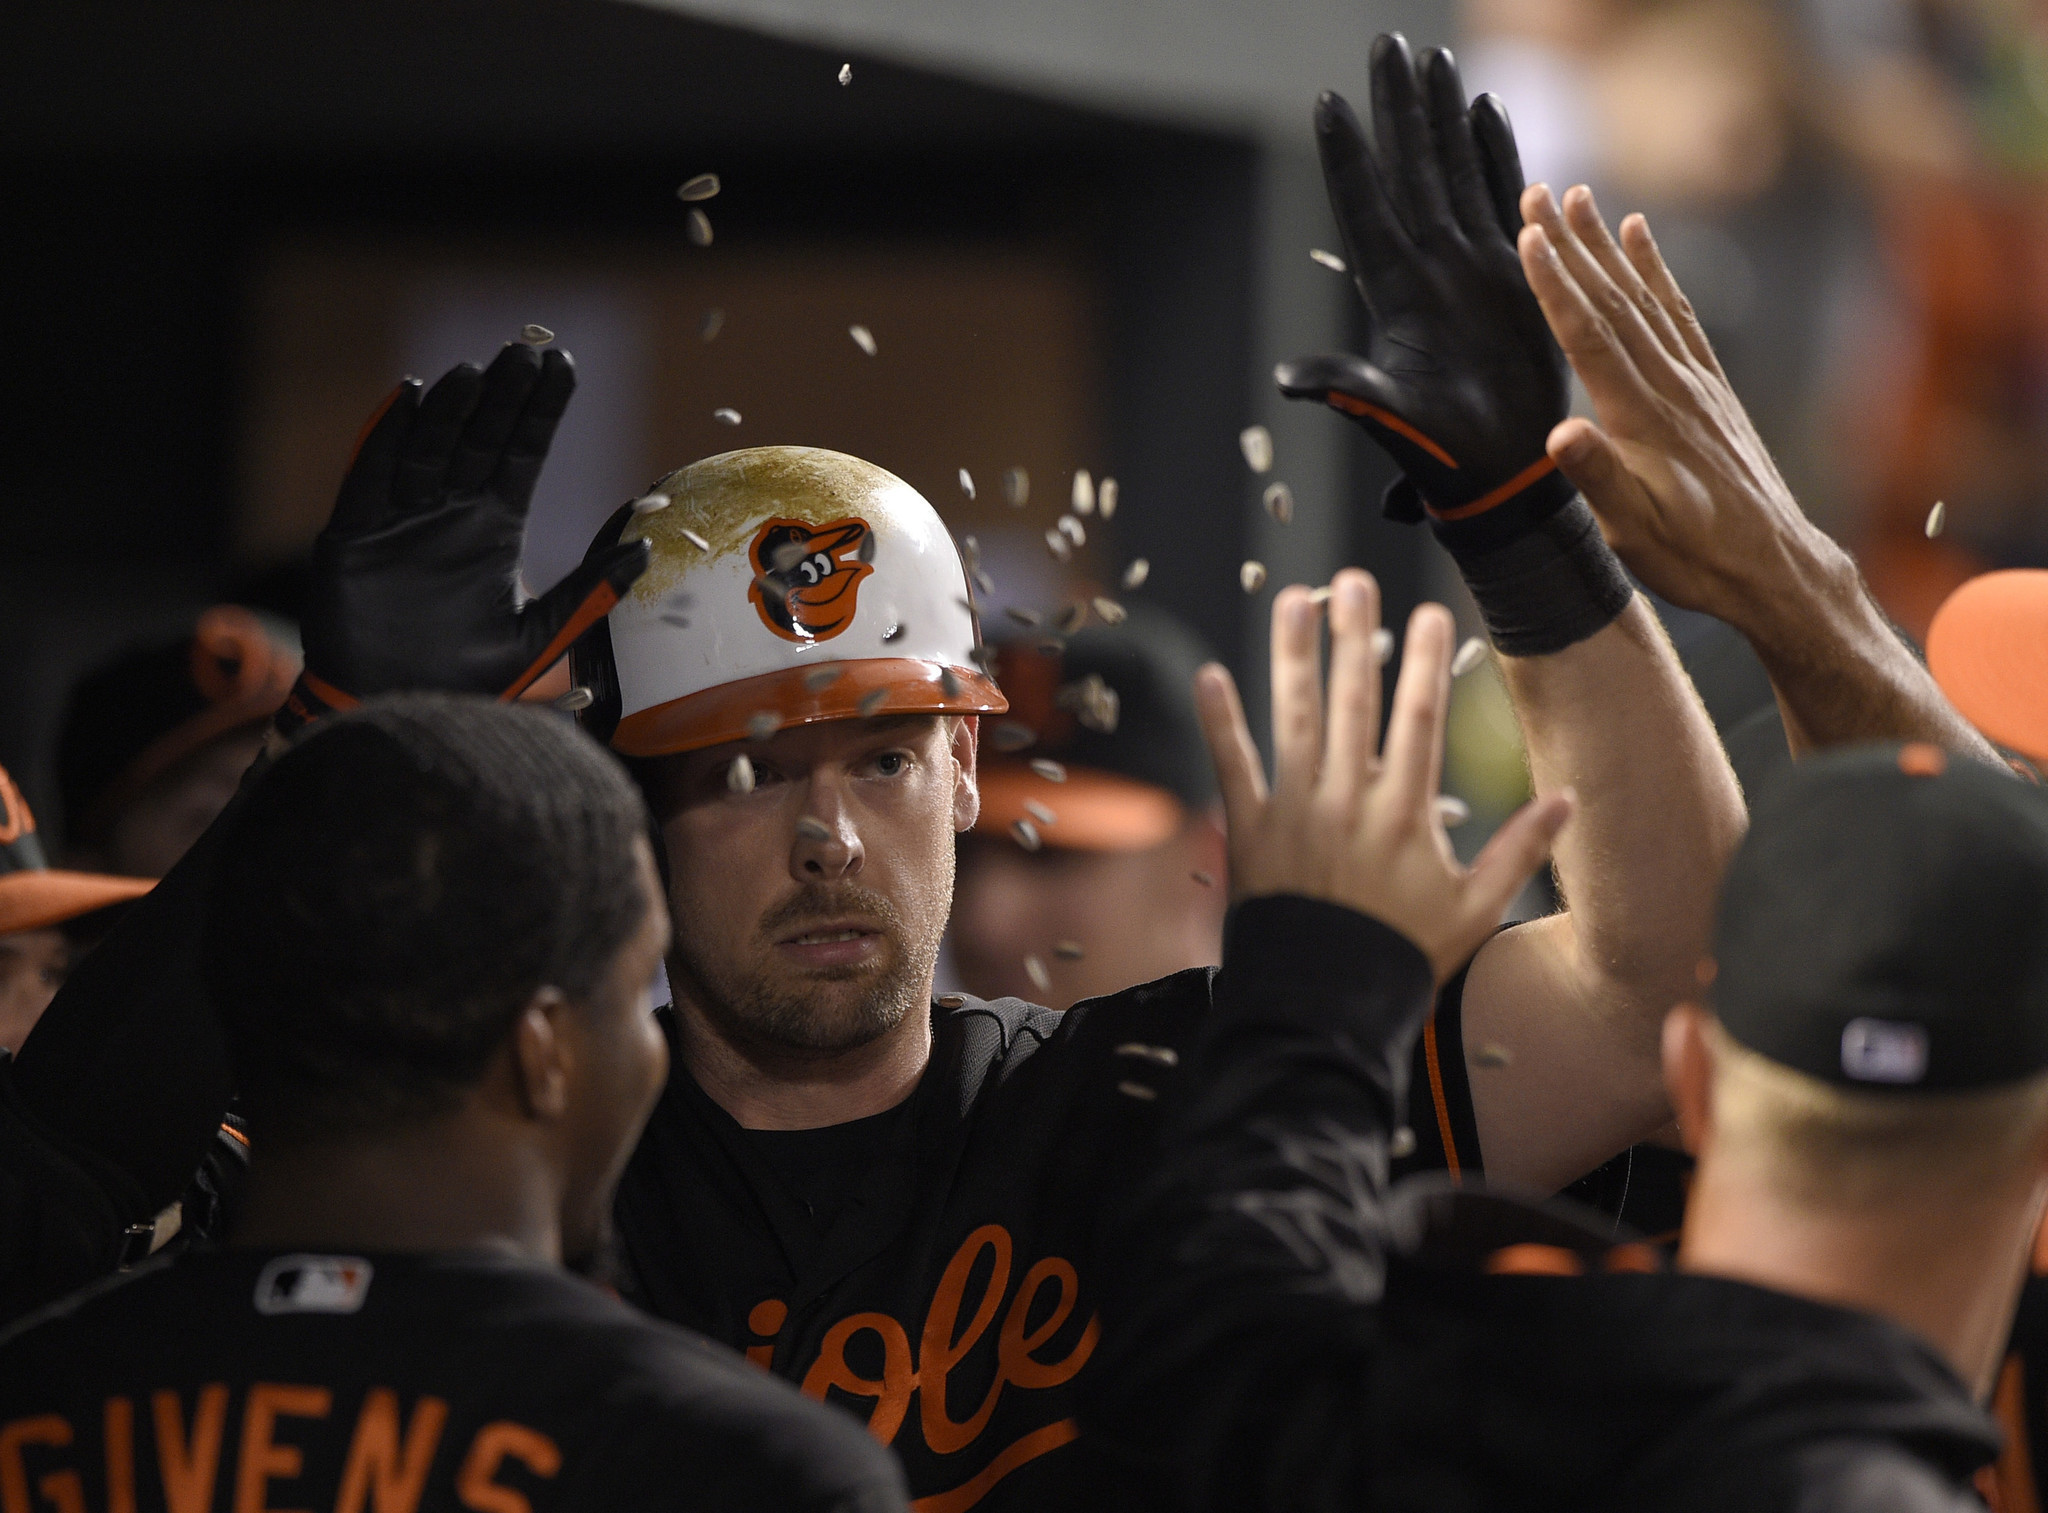 Bal-orioles-on-deck-what-to-watch-saturday-vs-diamondbacks-20160924